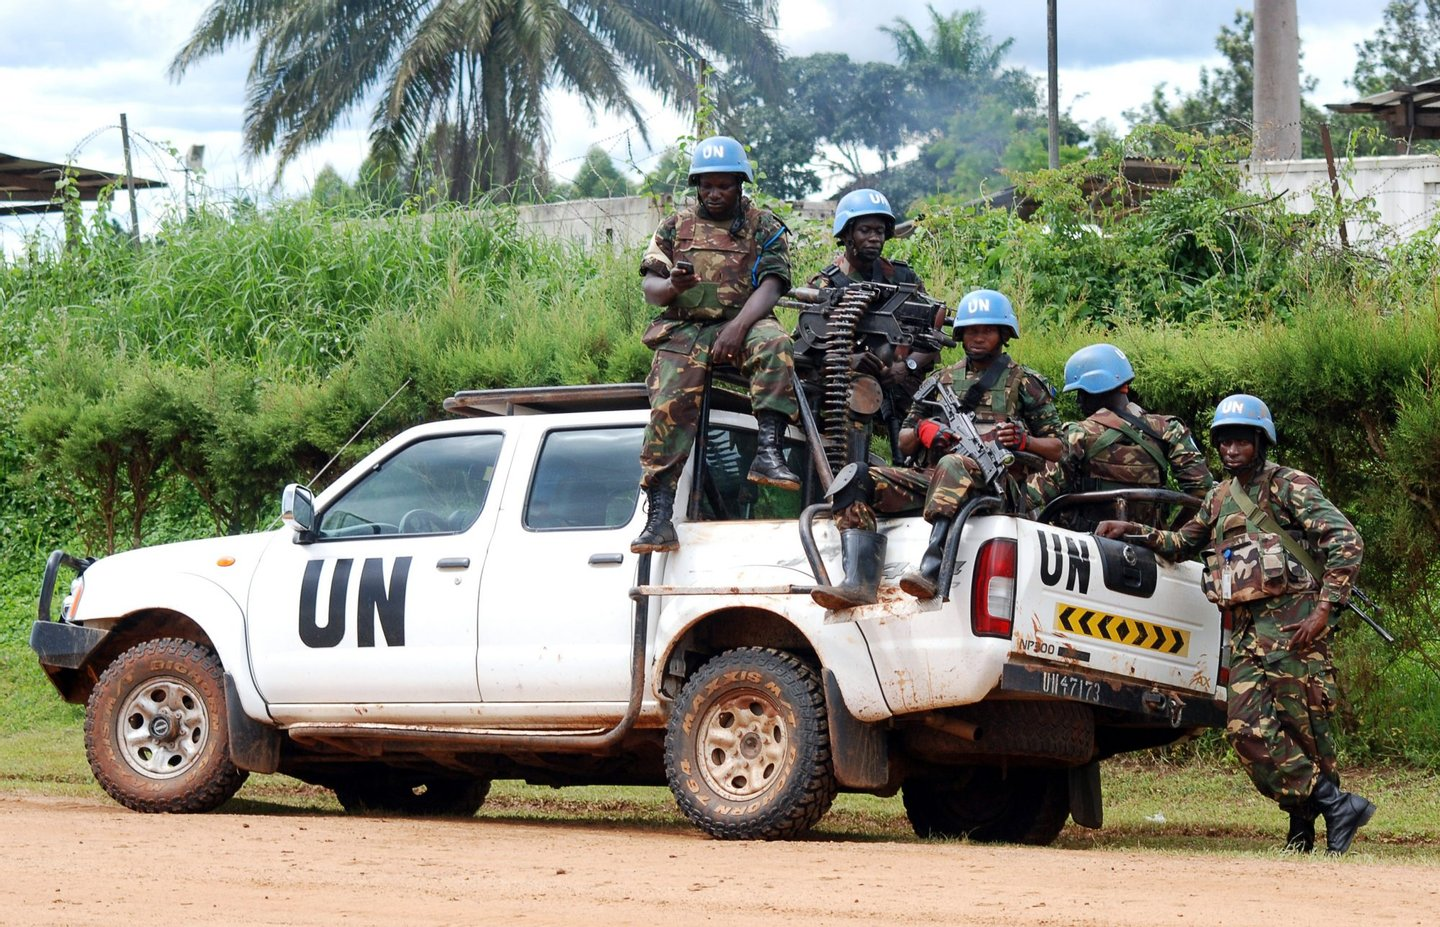 Blue helmet members of the United Nations Organization Stabilization Mission in the Democratic Republic of Congo MONUSCO sit on the back of a UN pick-up truck on October 23, 2014 in Beni. Several violent protests have erupted since October 21 in the east of the Democratic Republic of Congo to demand the departure of MONUSCO, accused of failing to prevent recent massacres in the Beni territory, attributed to Islamist Ugandan rebels of the Allied Democratic Forces (ADF), in which 80 civilians were killed in less than two weeks. AFP PHOTO / ALAIN WANDIMOYI (Photo credit should read ALAIN WANDIMOYI/AFP/Getty Images)